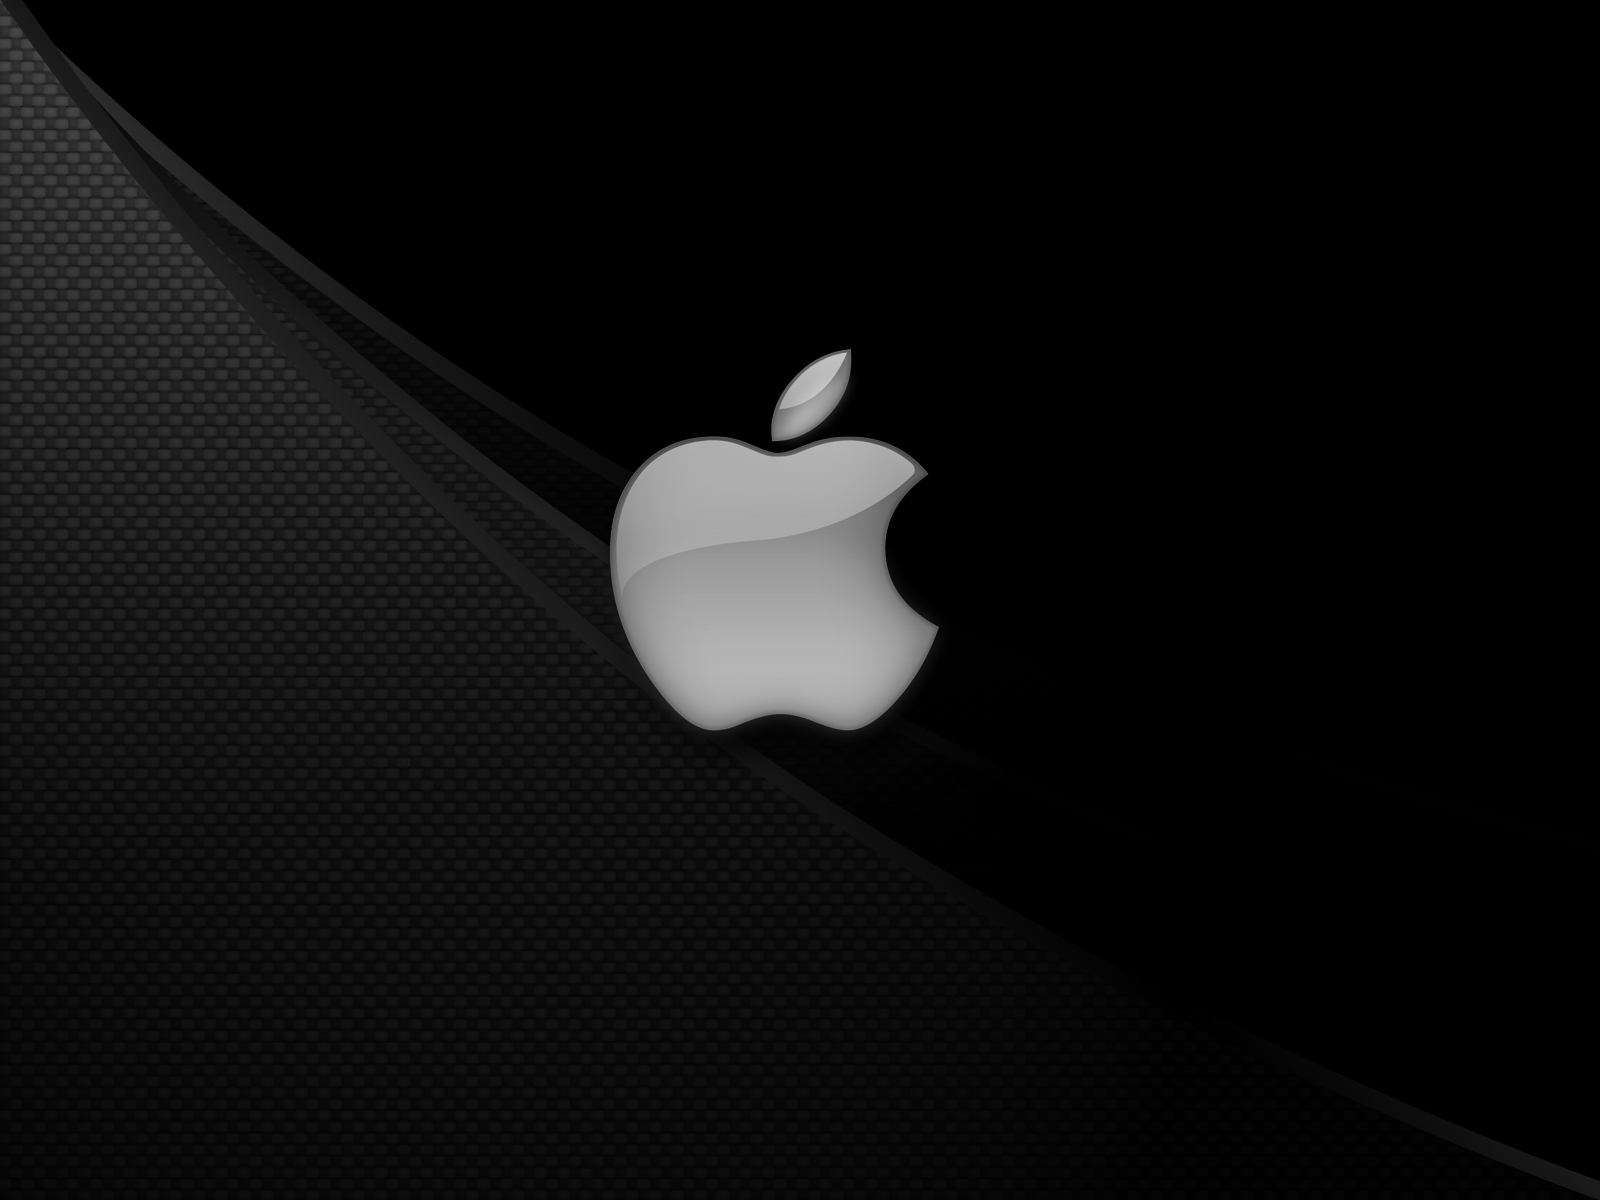 Apple Black and White HD PC Wallpapers 3571 - Amazing Wallpaperz